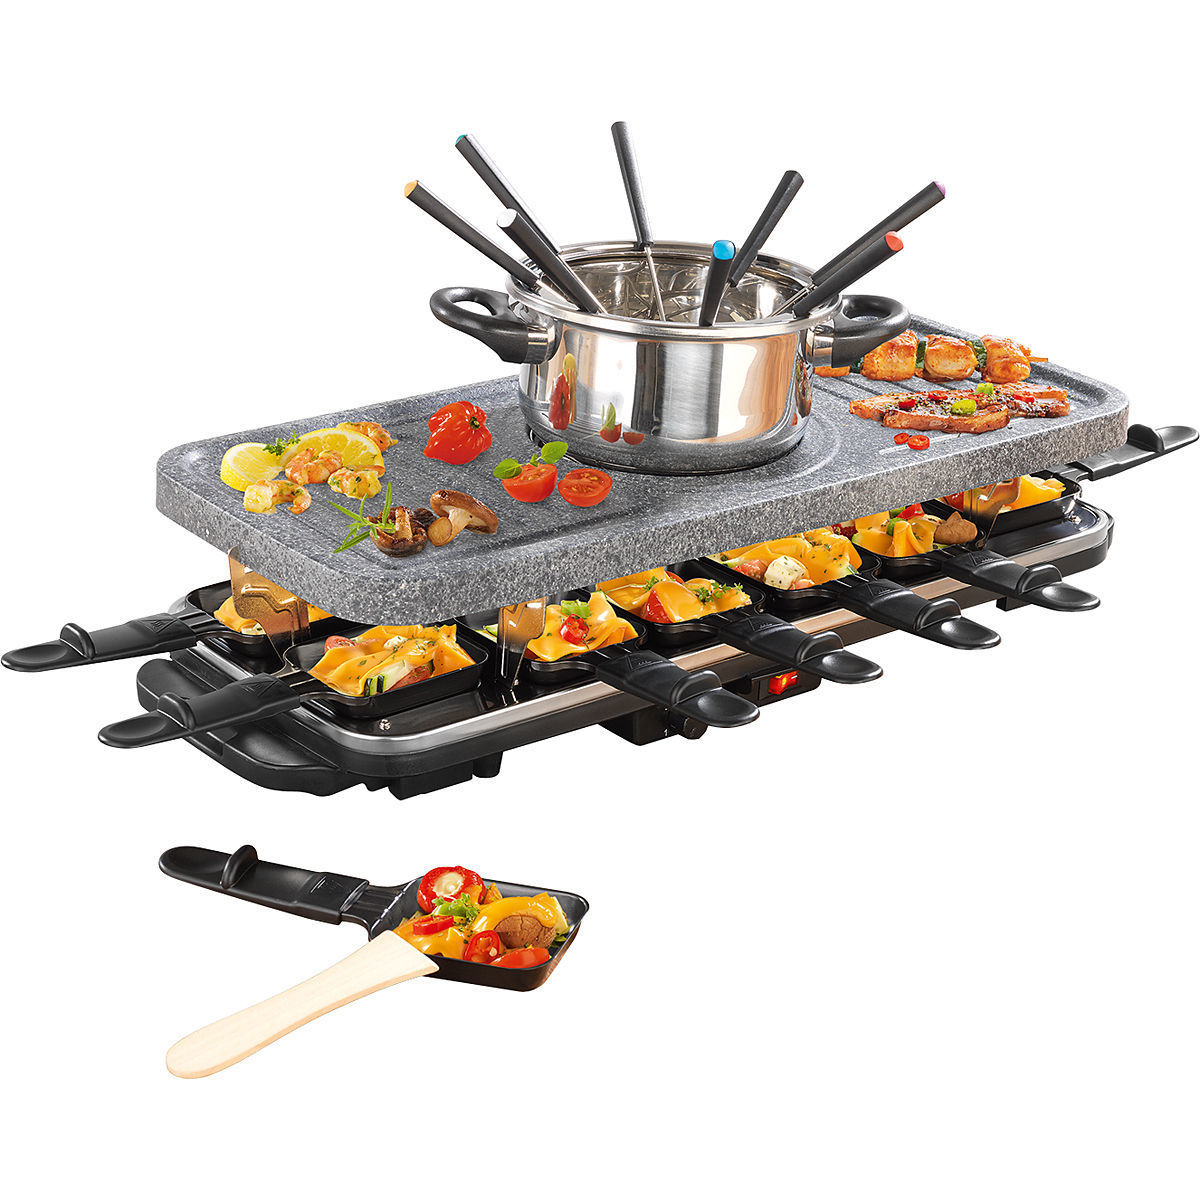 gourmetmaxx raclette und fondue set granit keramik von karstadt f r 69 99 ansehen. Black Bedroom Furniture Sets. Home Design Ideas